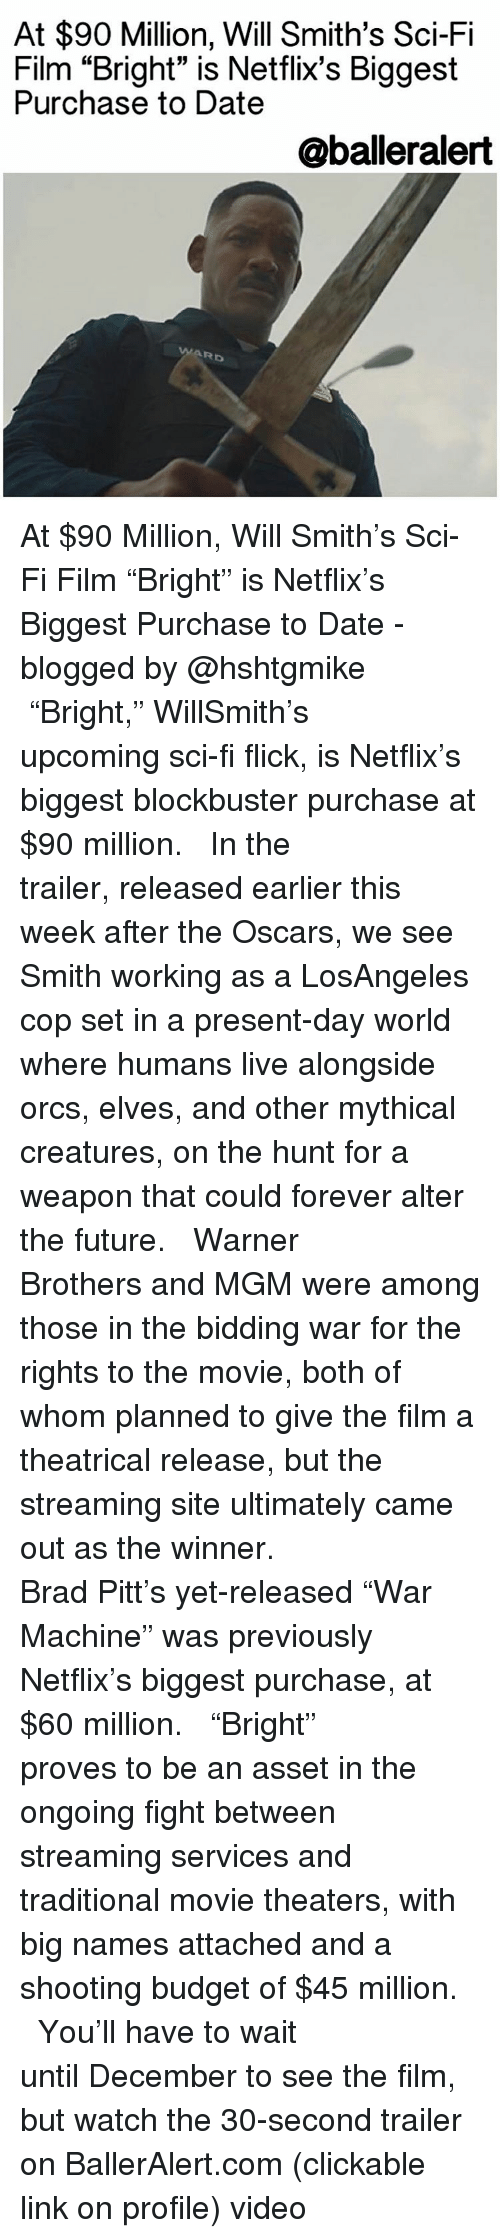 """Brad Pitt, Memes, and Will Smith: At $90 Million, Will Smith's Sci-Fi  Film """"Bright"""" is Netflix's Biggest  Purchase to Date  @balleralert  Rb At $90 Million, Will Smith's Sci-Fi Film """"Bright"""" is Netflix's Biggest Purchase to Date -blogged by @hshtgmike ⠀⠀⠀⠀⠀⠀⠀⠀⠀ ⠀⠀⠀⠀⠀⠀⠀⠀⠀ """"Bright,"""" WillSmith's upcoming sci-fi flick, is Netflix's biggest blockbuster purchase at $90 million. ⠀⠀⠀⠀⠀⠀⠀⠀⠀ ⠀⠀⠀⠀⠀⠀⠀⠀⠀ In the trailer, released earlier this week after the Oscars, we see Smith working as a LosAngeles cop set in a present-day world where humans live alongside orcs, elves, and other mythical creatures, on the hunt for a weapon that could forever alter the future. ⠀⠀⠀⠀⠀⠀⠀⠀⠀ ⠀⠀⠀⠀⠀⠀⠀⠀⠀ Warner Brothers and MGM were among those in the bidding war for the rights to the movie, both of whom planned to give the film a theatrical release, but the streaming site ultimately came out as the winner. ⠀⠀⠀⠀⠀⠀⠀⠀⠀ ⠀⠀⠀⠀⠀⠀⠀⠀⠀ Brad Pitt's yet-released """"War Machine"""" was previously Netflix's biggest purchase, at $60 million. ⠀⠀⠀⠀⠀⠀⠀⠀⠀ ⠀⠀⠀⠀⠀⠀⠀⠀⠀ """"Bright"""" proves to be an asset in the ongoing fight between streaming services and traditional movie theaters, with big names attached and a shooting budget of $45 million. ⠀⠀⠀⠀⠀⠀⠀⠀⠀ ⠀⠀⠀⠀⠀⠀⠀⠀⠀ You'll have to wait until December to see the film, but watch the 30-second trailer on BallerAlert.com (clickable link on profile) video"""